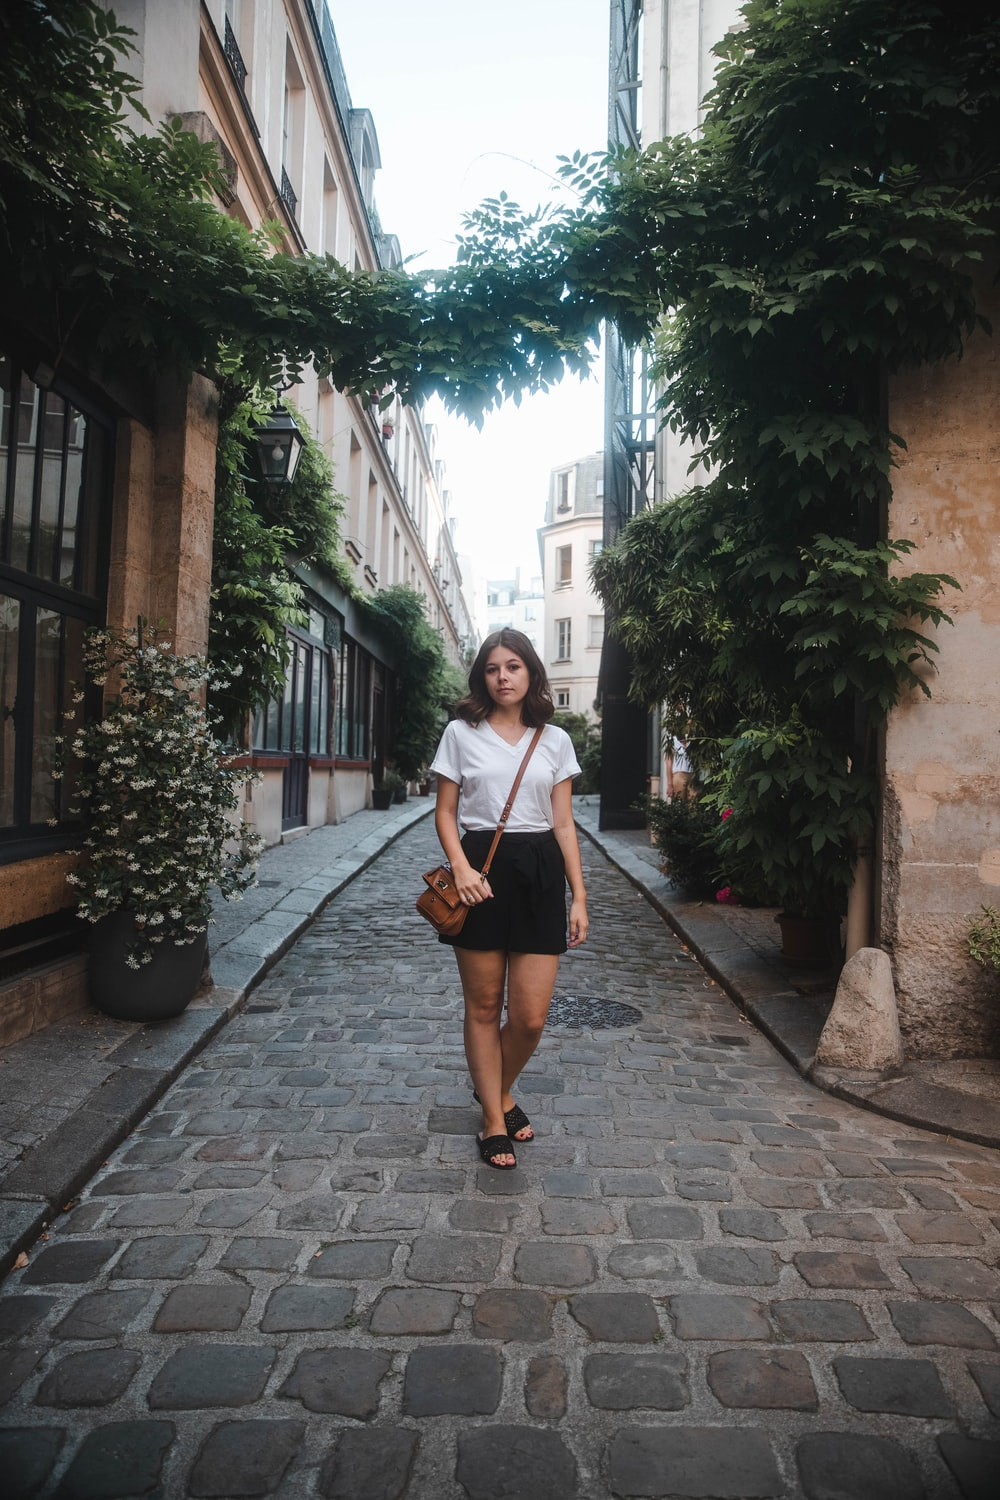 woman standing on pavement in between buildings during daytime